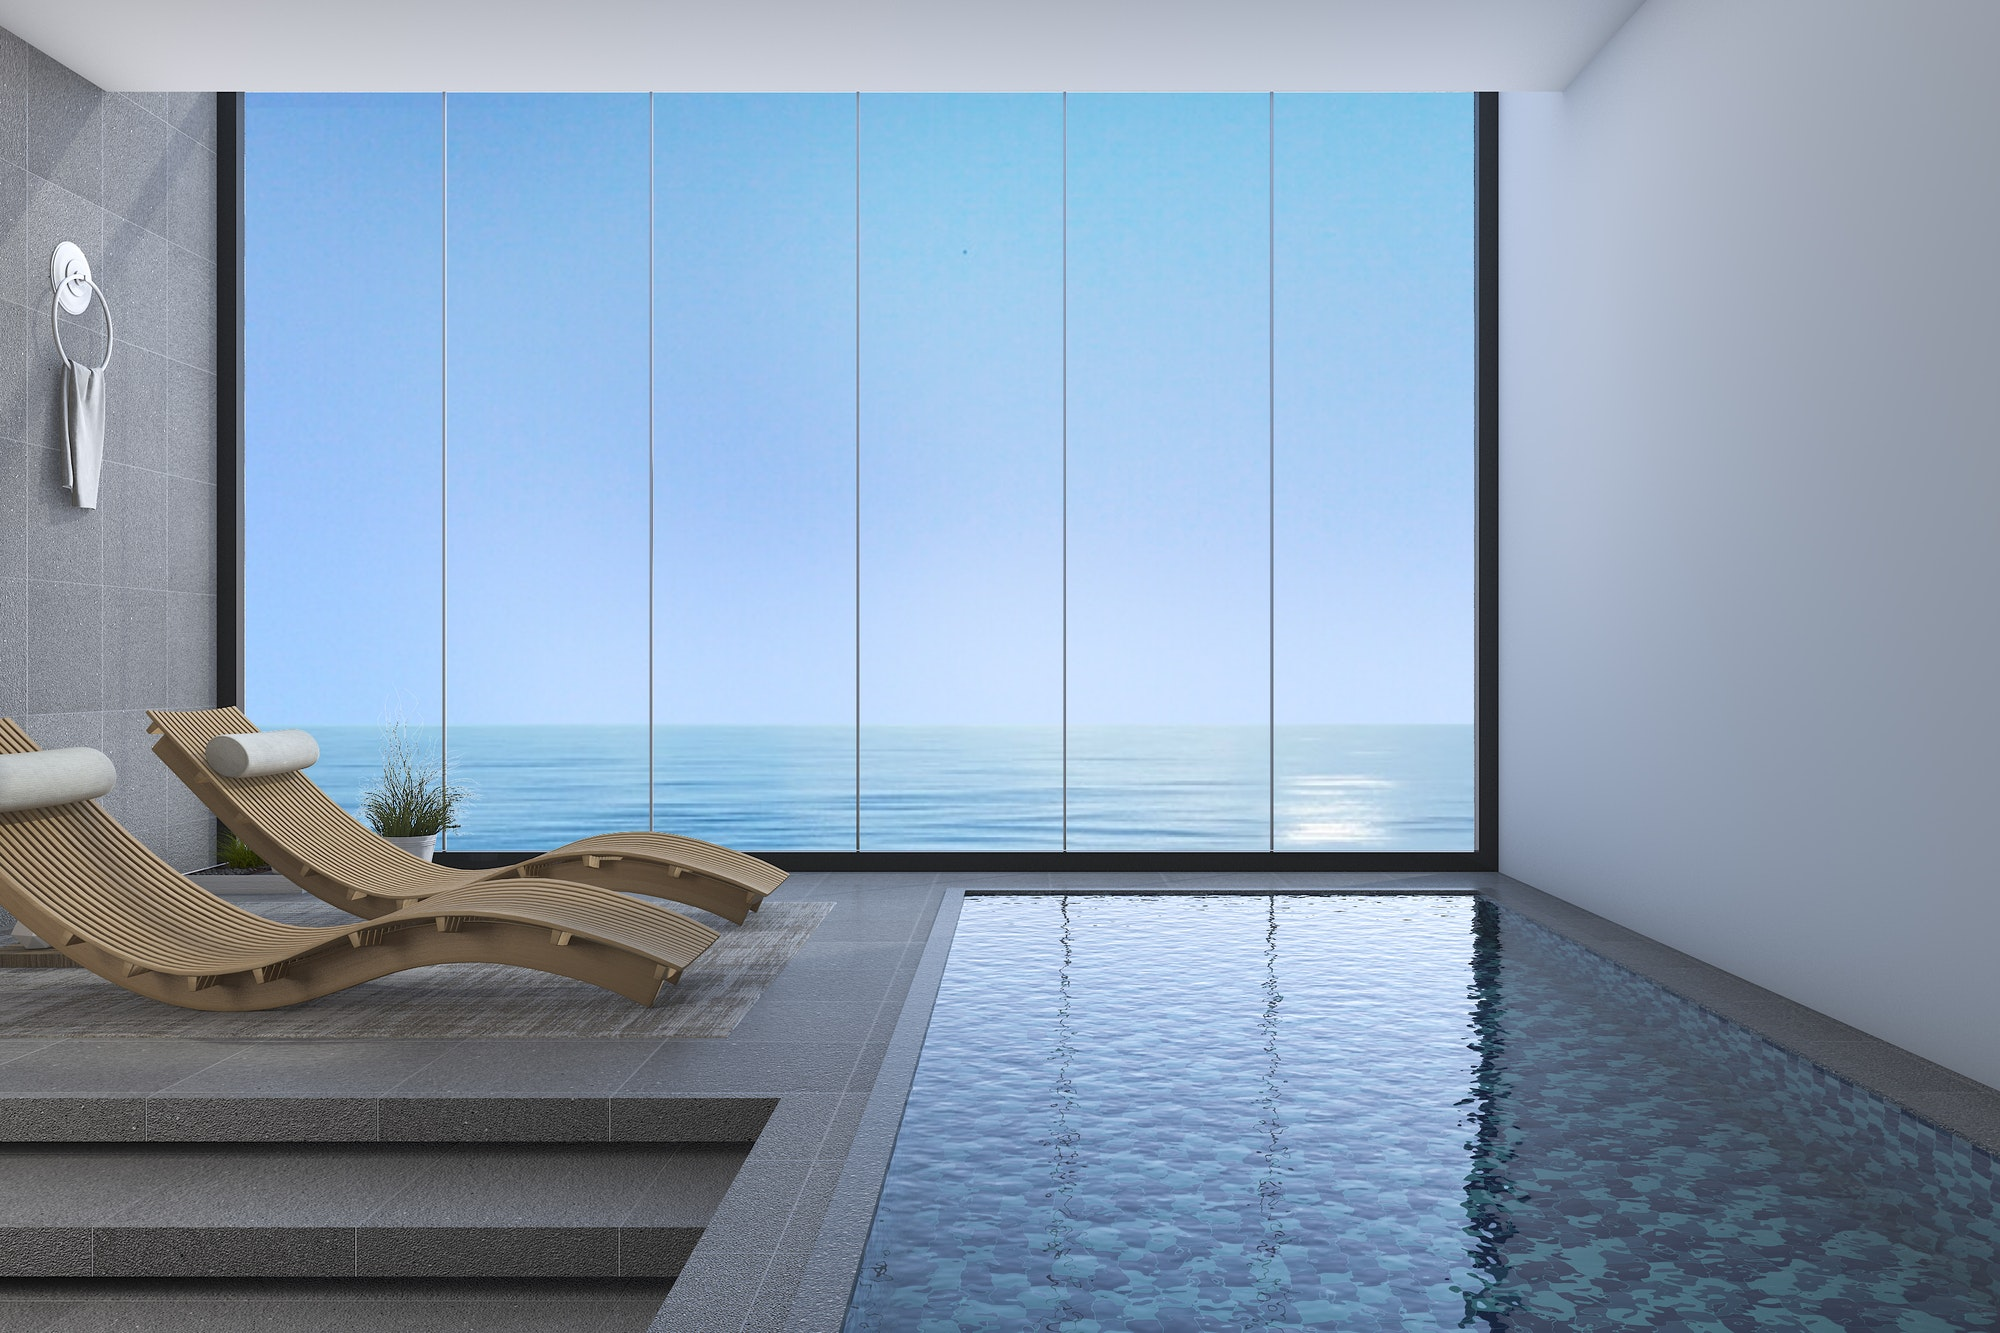 Presupuesto wood bed bench near pool and sea view from window with modern design